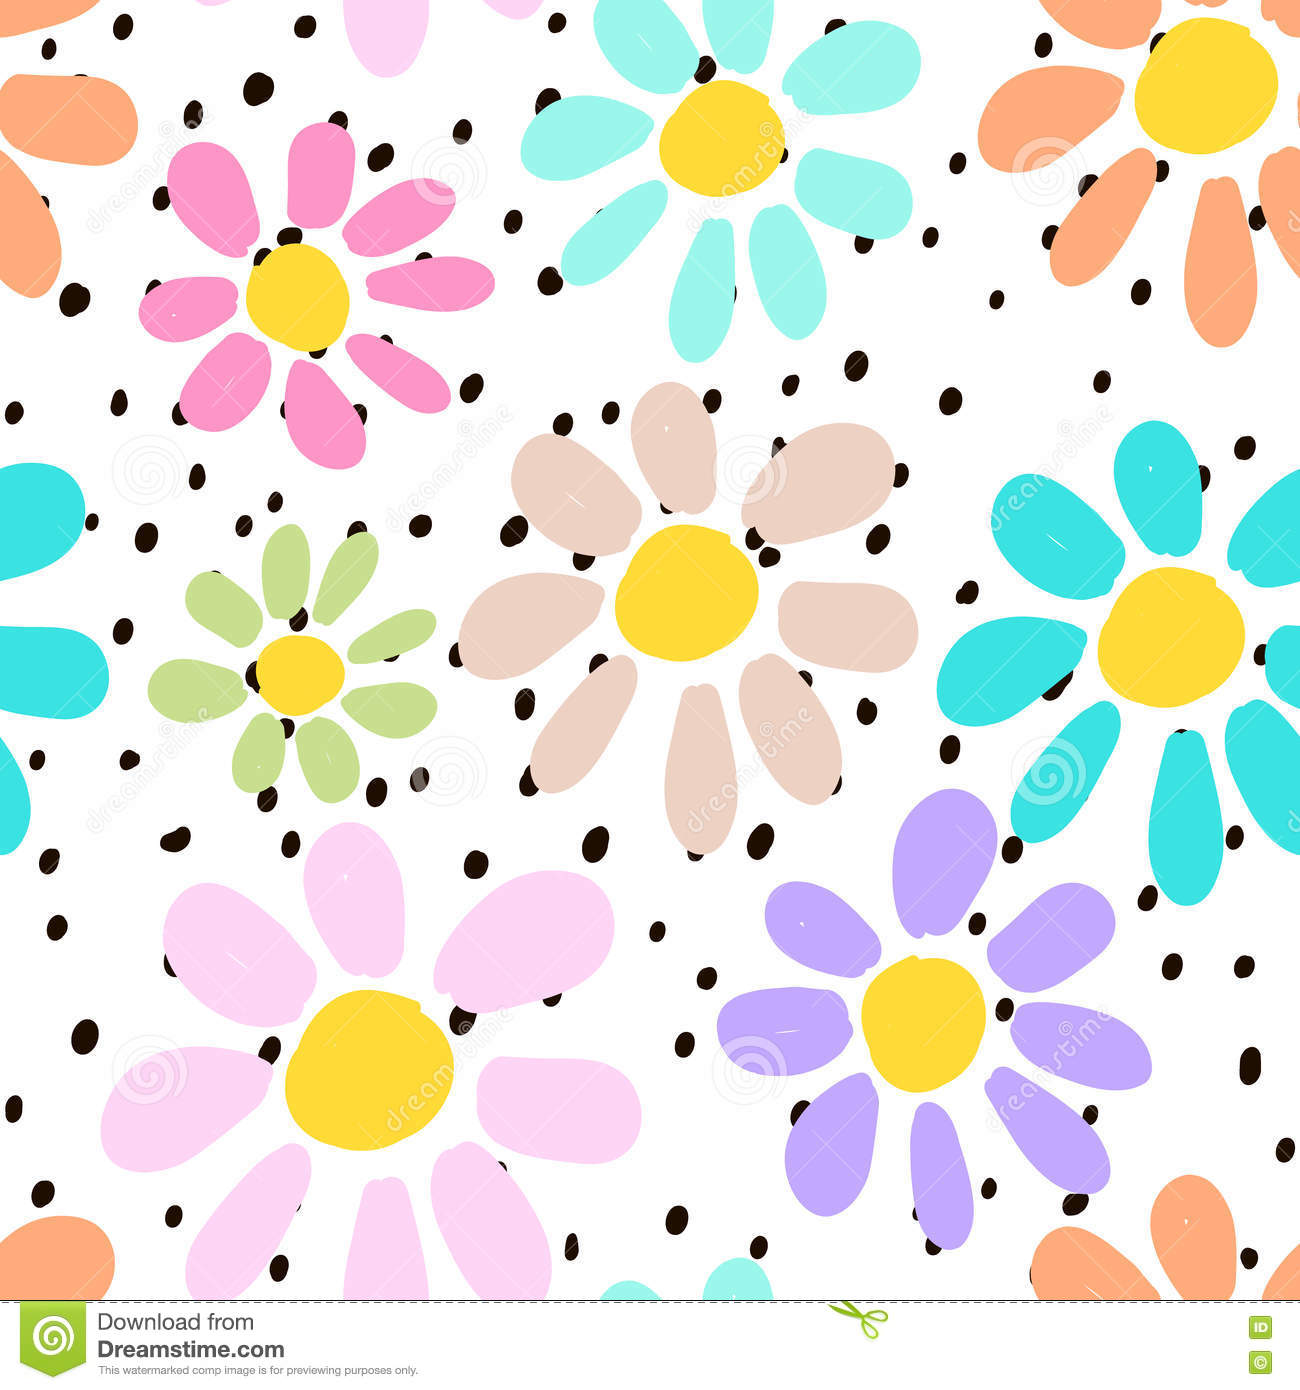 Hand drawn seamless pattern with colorful unusual flowers on polka dots background. Perfectly look on fabric, textile, etc